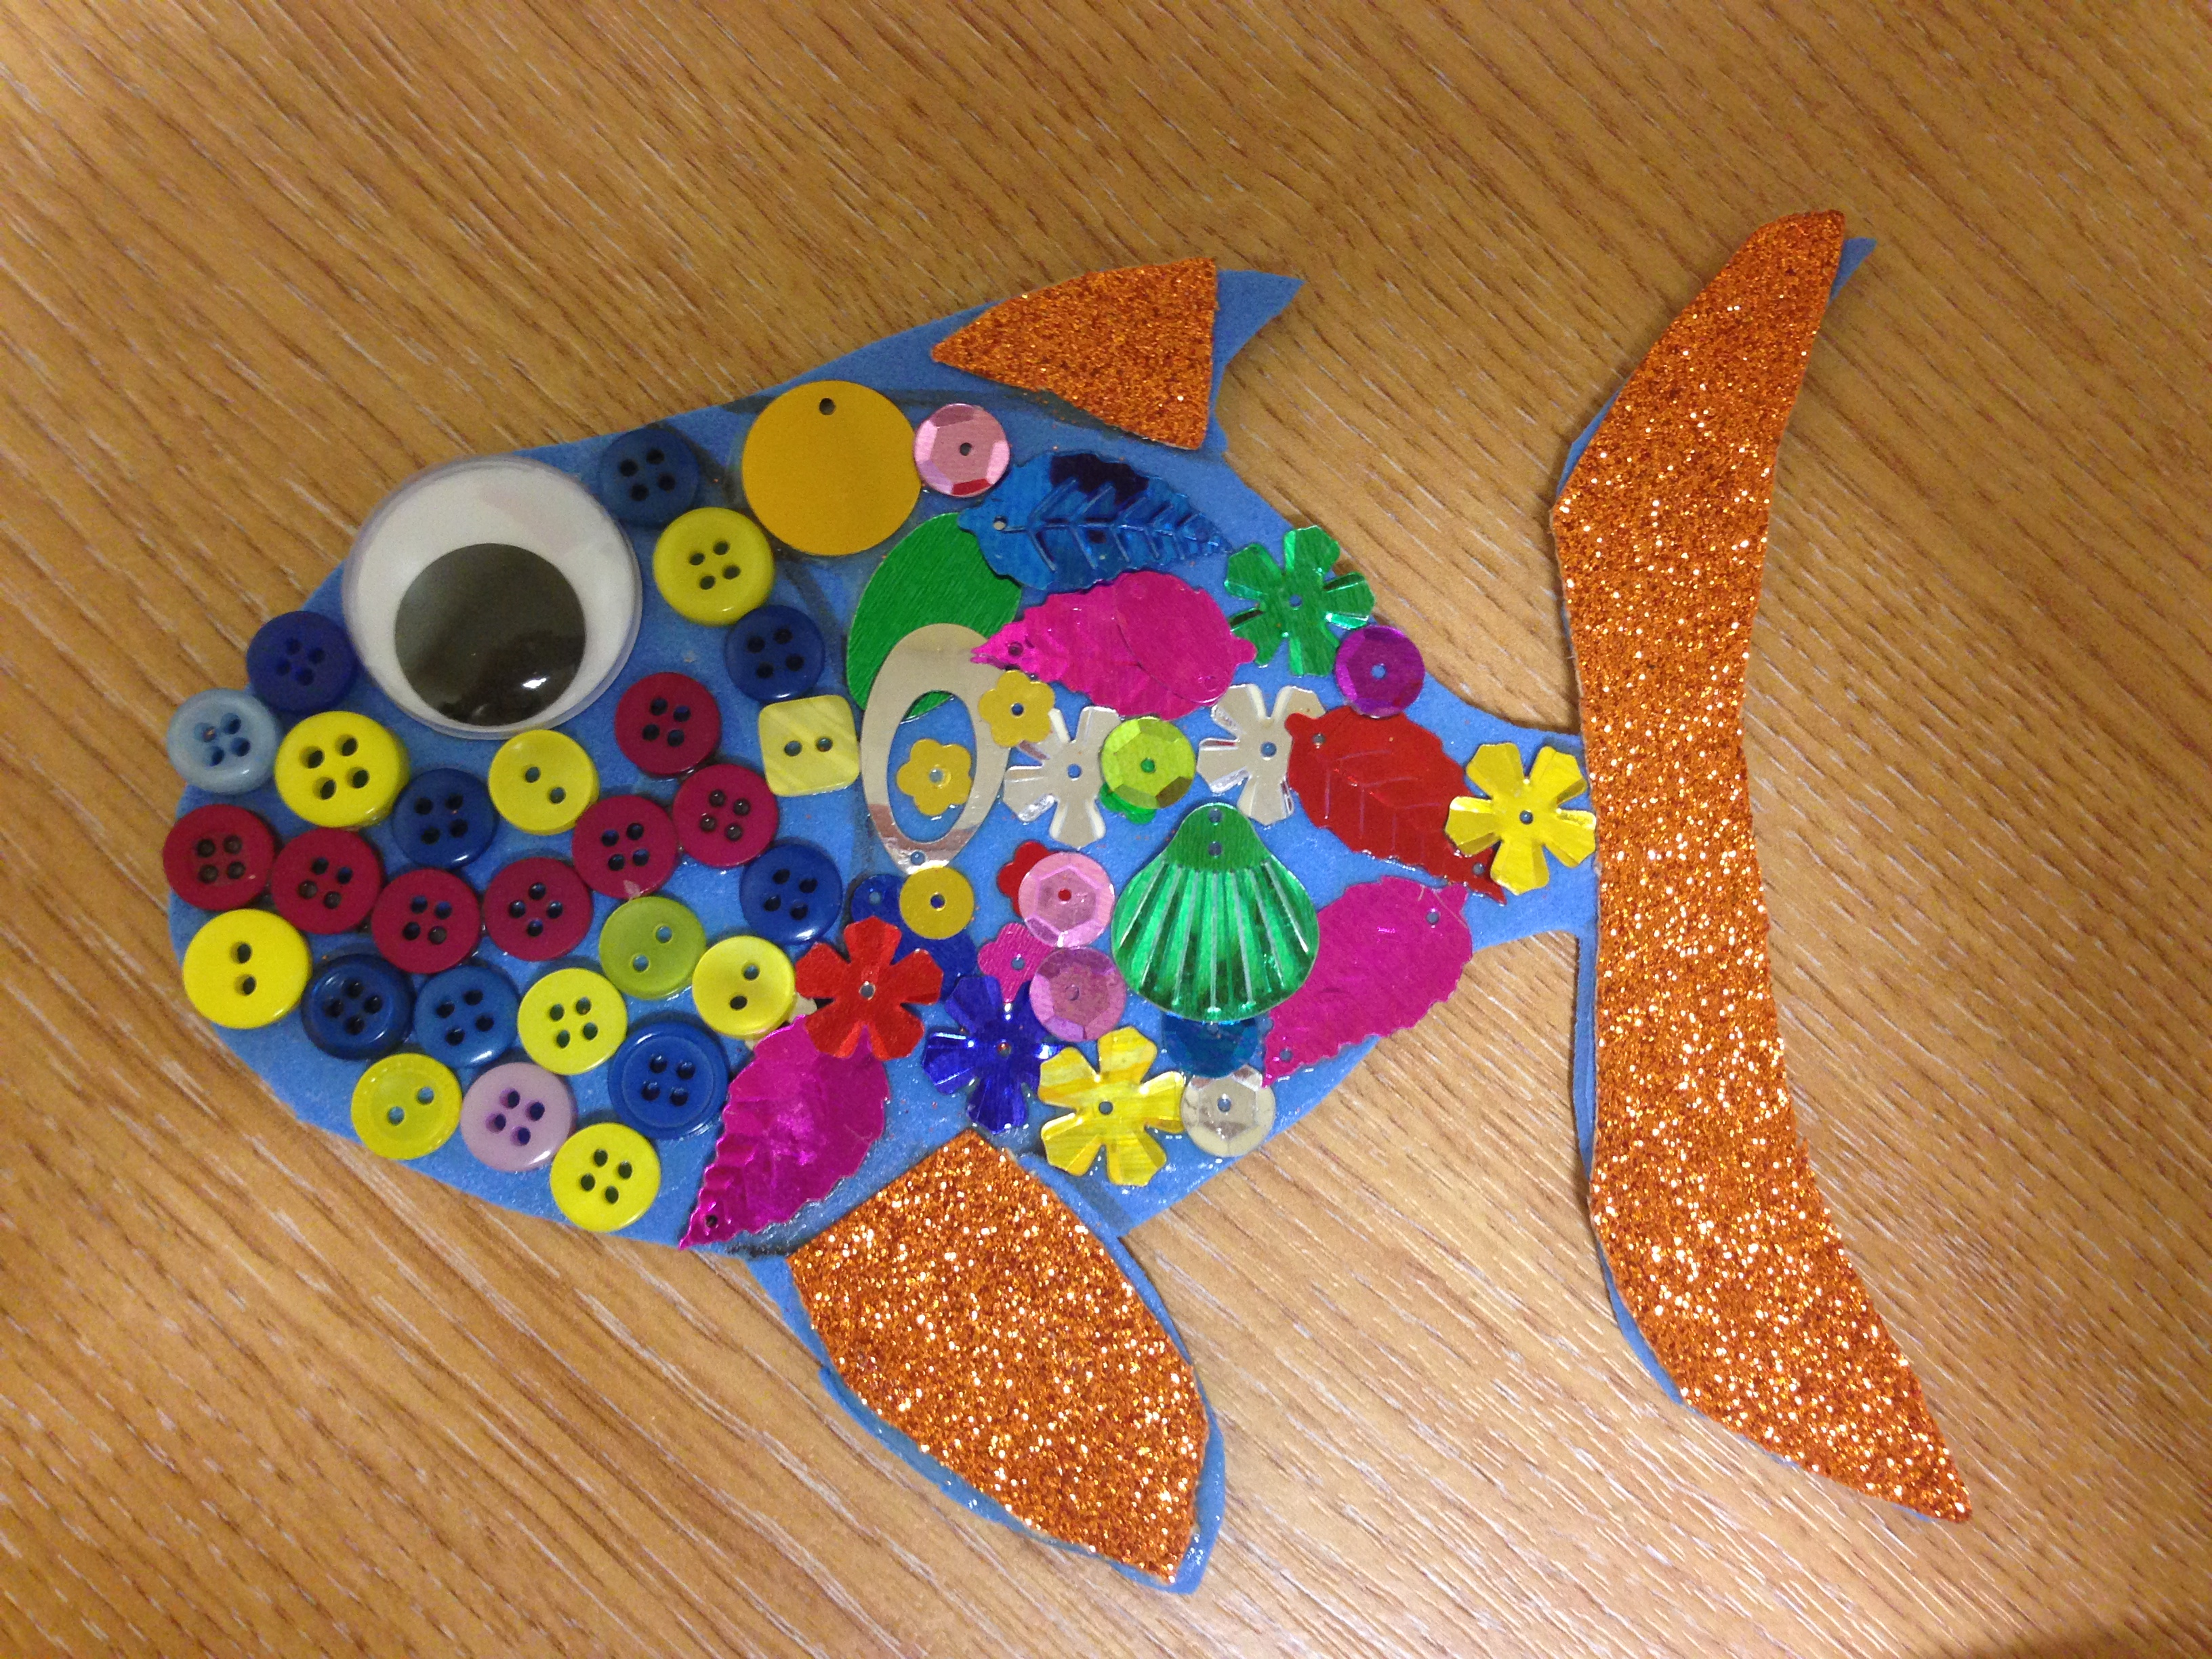 Fish which some of the kids made as part of TYMR events at the Kingdom of Mourne Festival